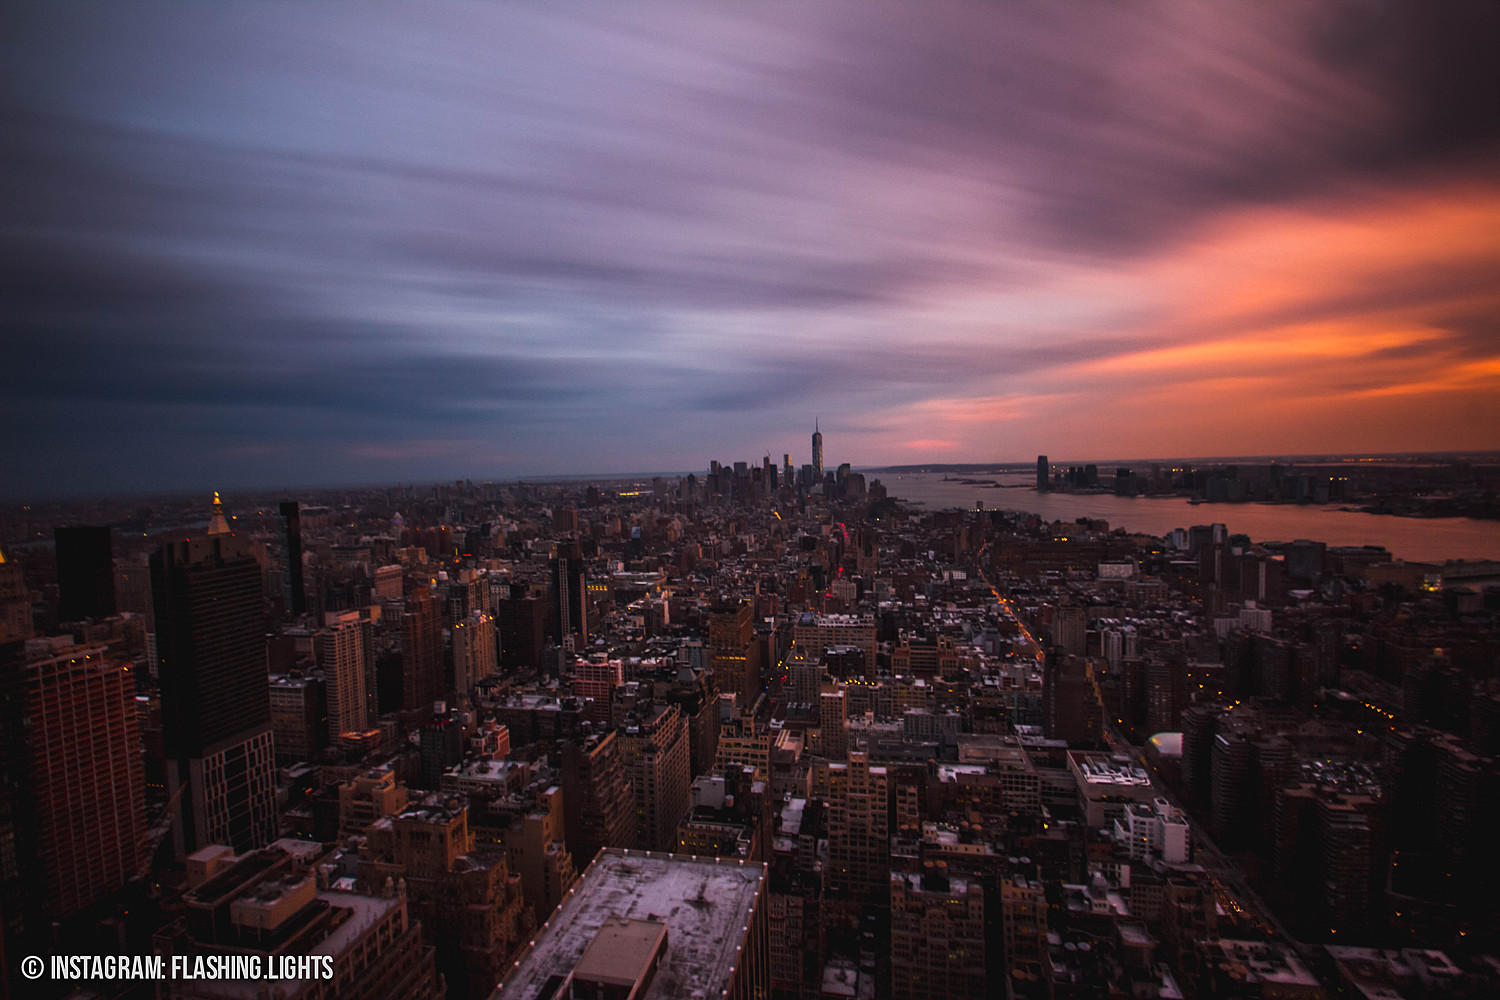 A beautiful sunset over downtown New York City.